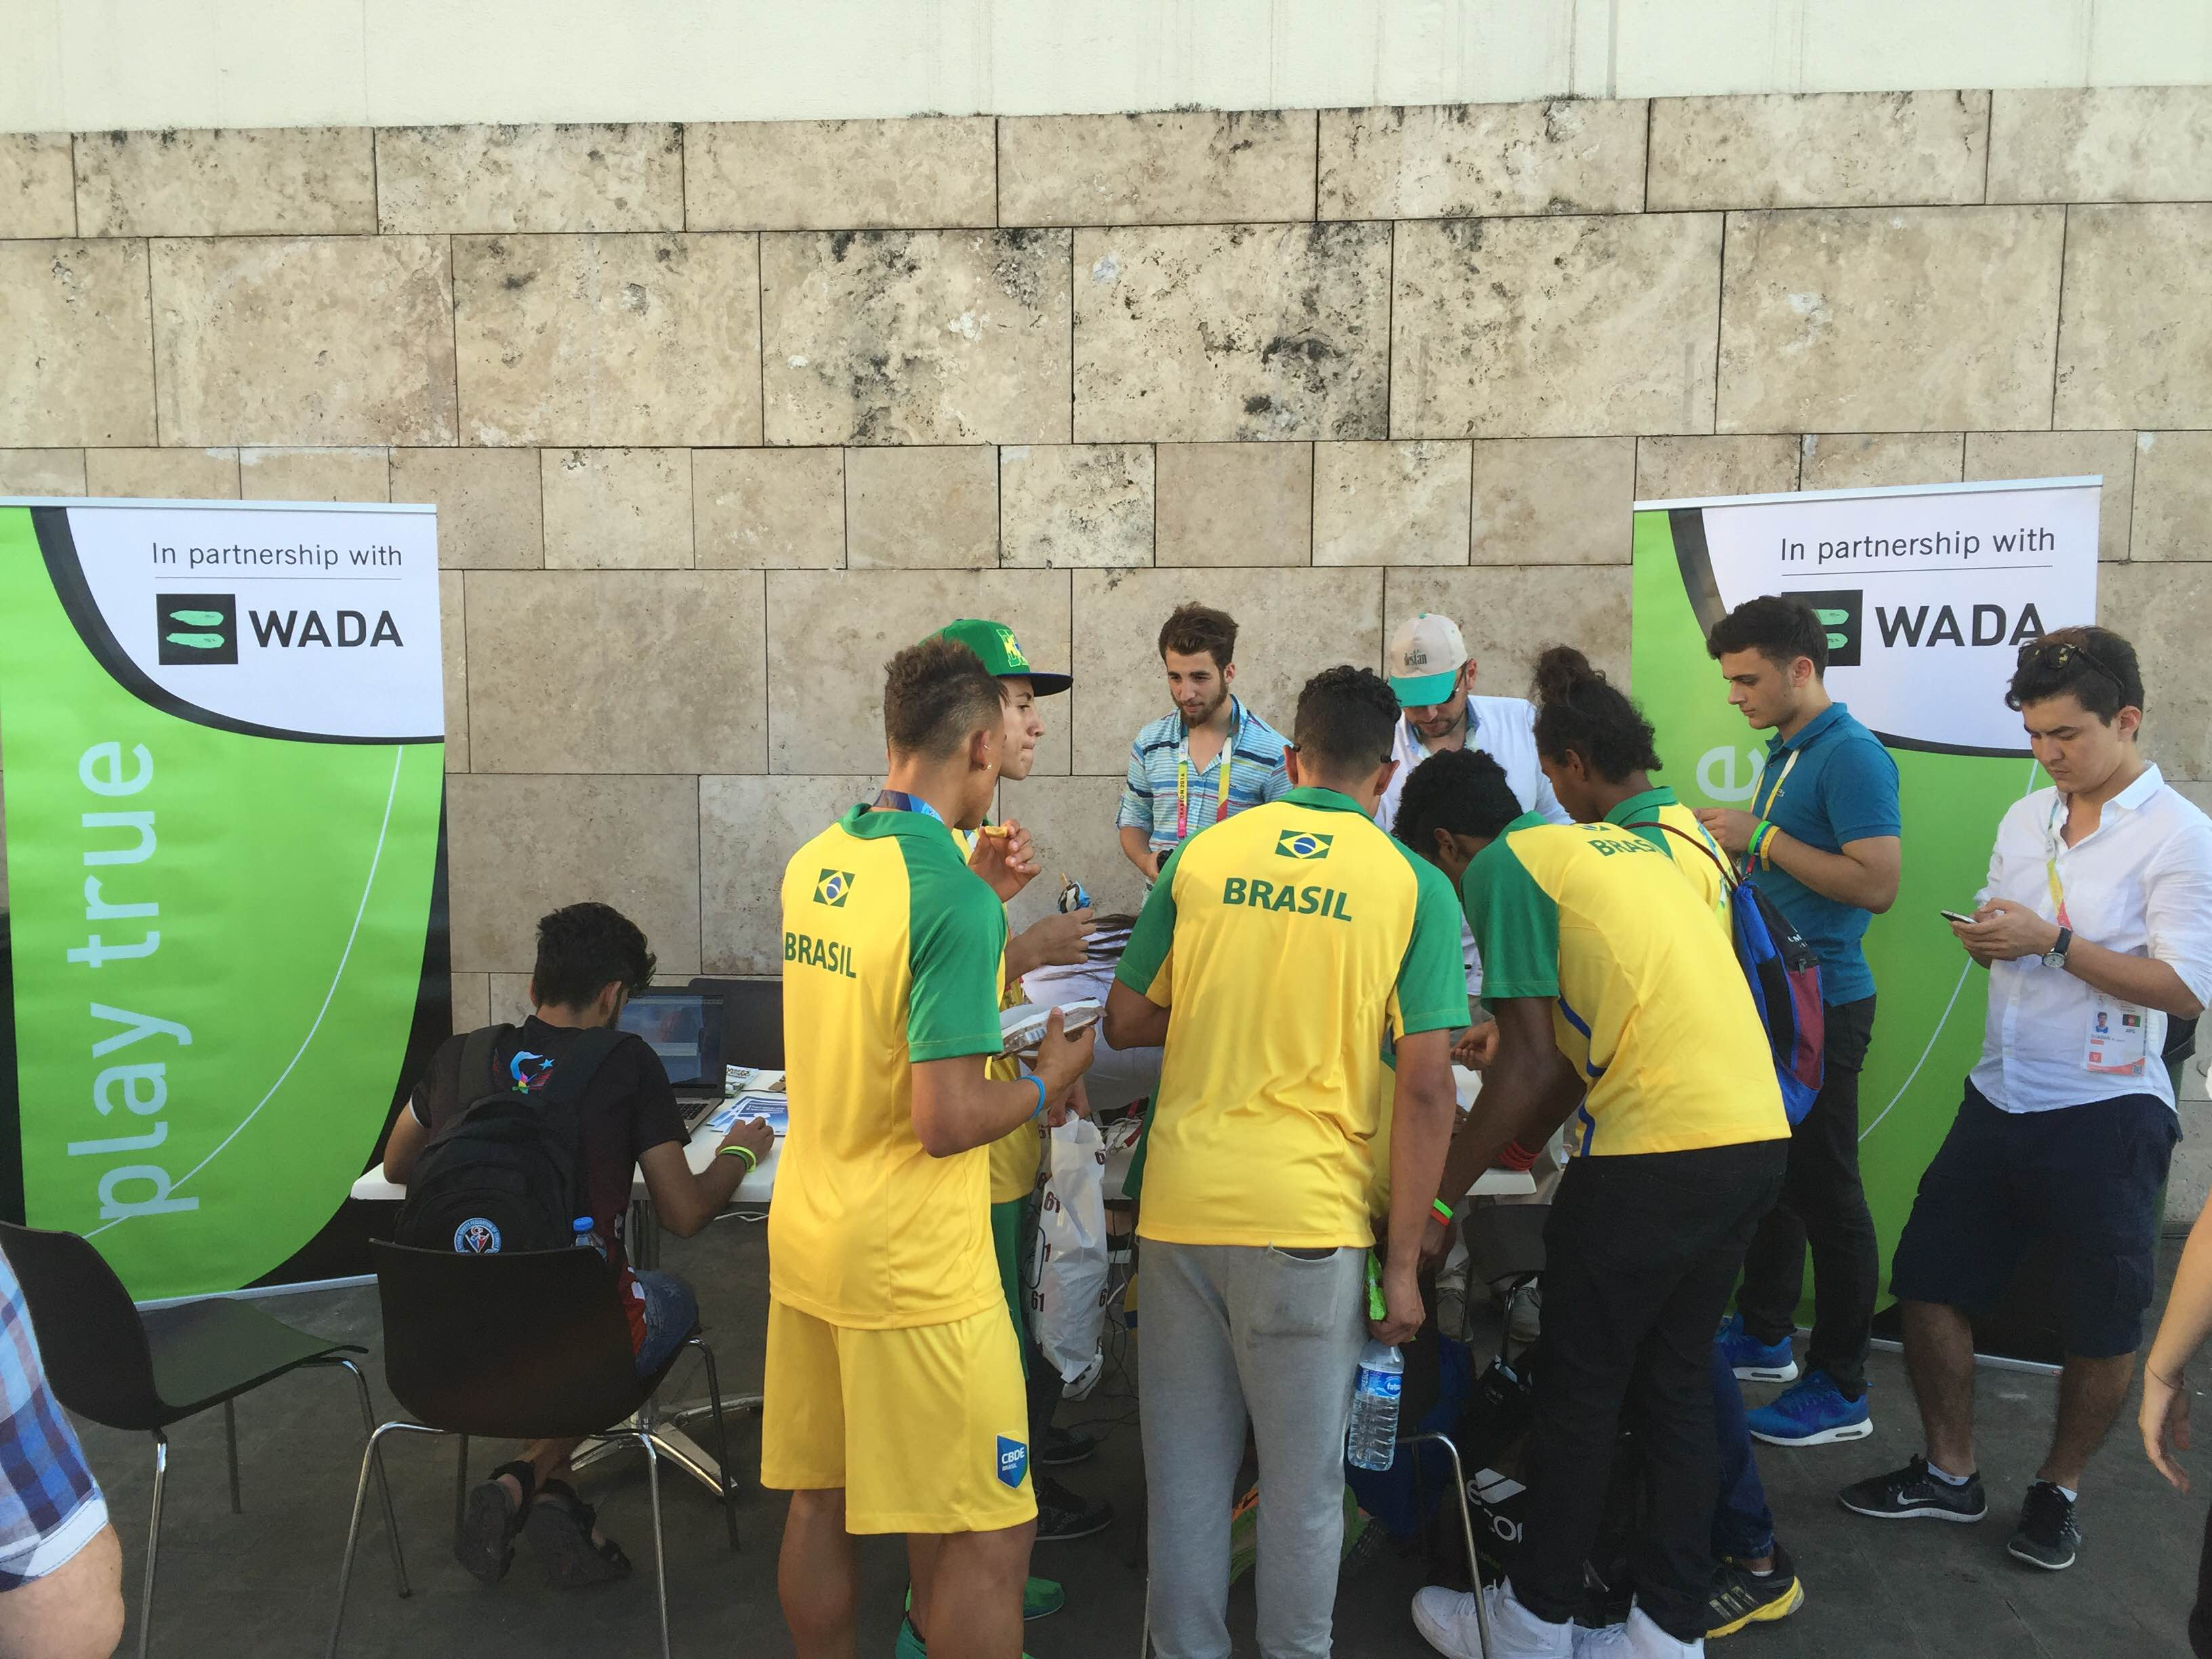 GYMNASİADE 2016 TRABZON – WADA OUTREACH PROGRAM